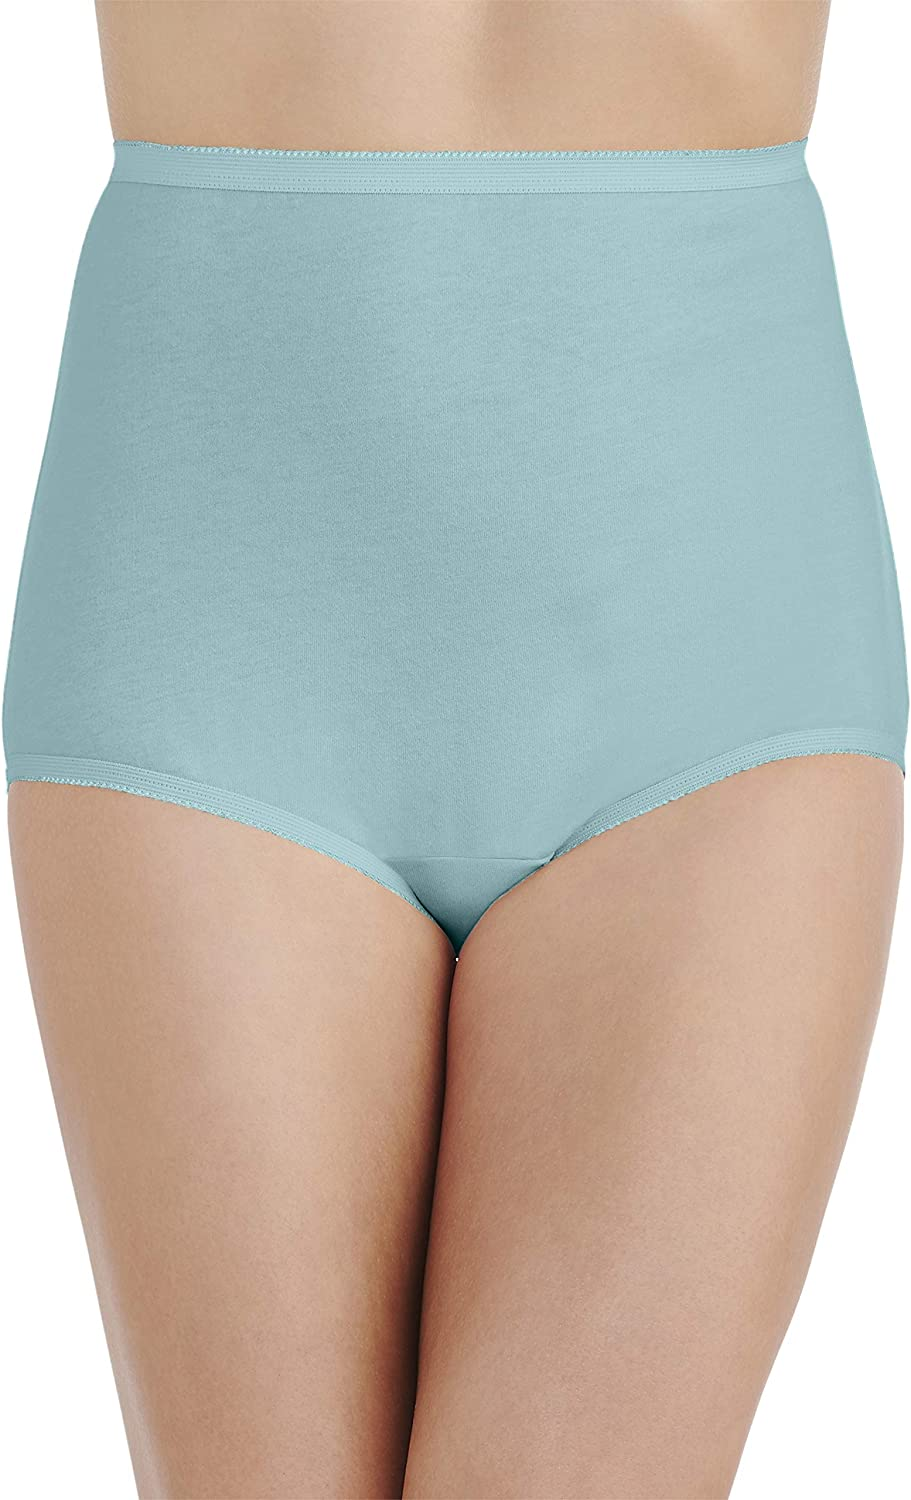 Vanity Fair Women S Underwear Perfectly Yours Traditional Cotton Brief Panties At Amazon Women S Clothing Store